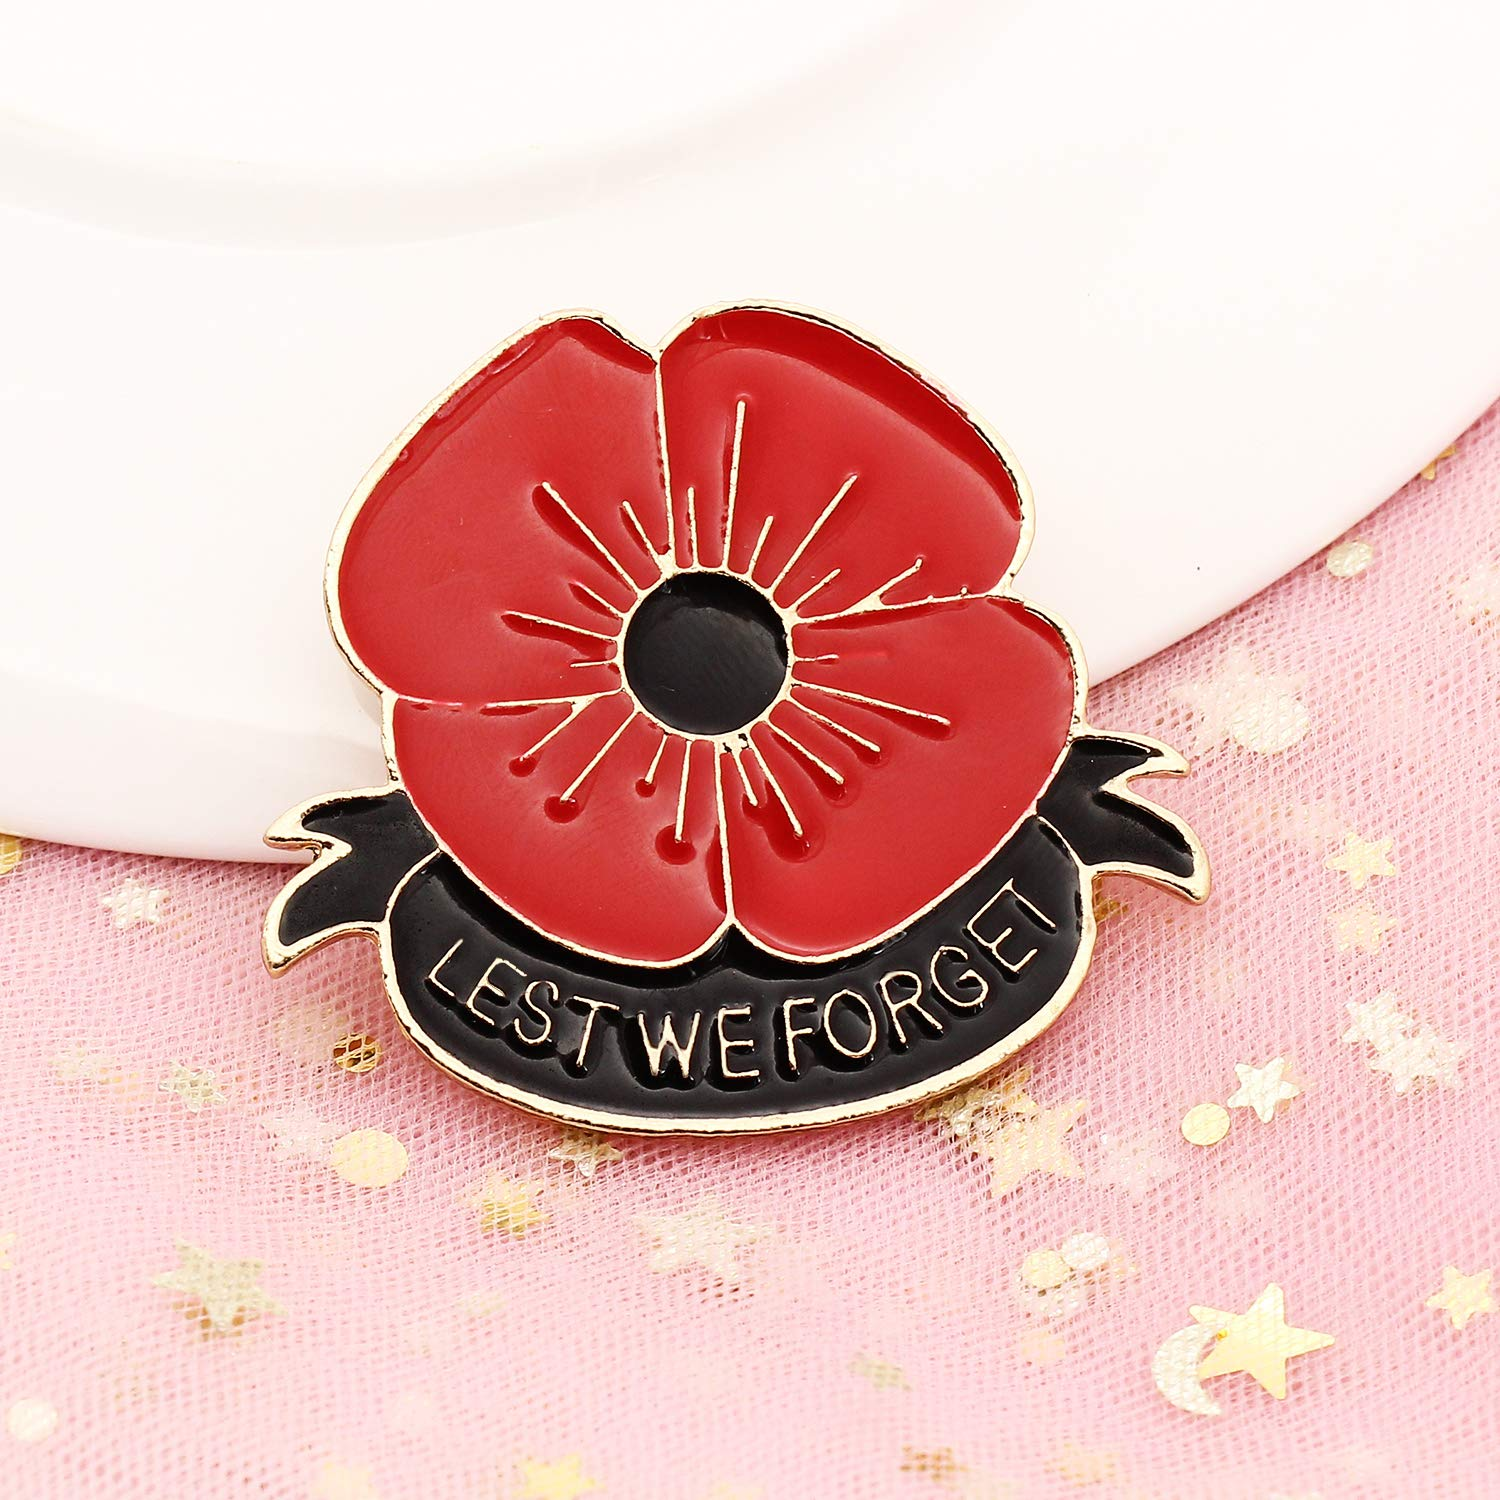 Awyuan Lest We Forget Red Poppy Flower Brooch Pin Broach Clip